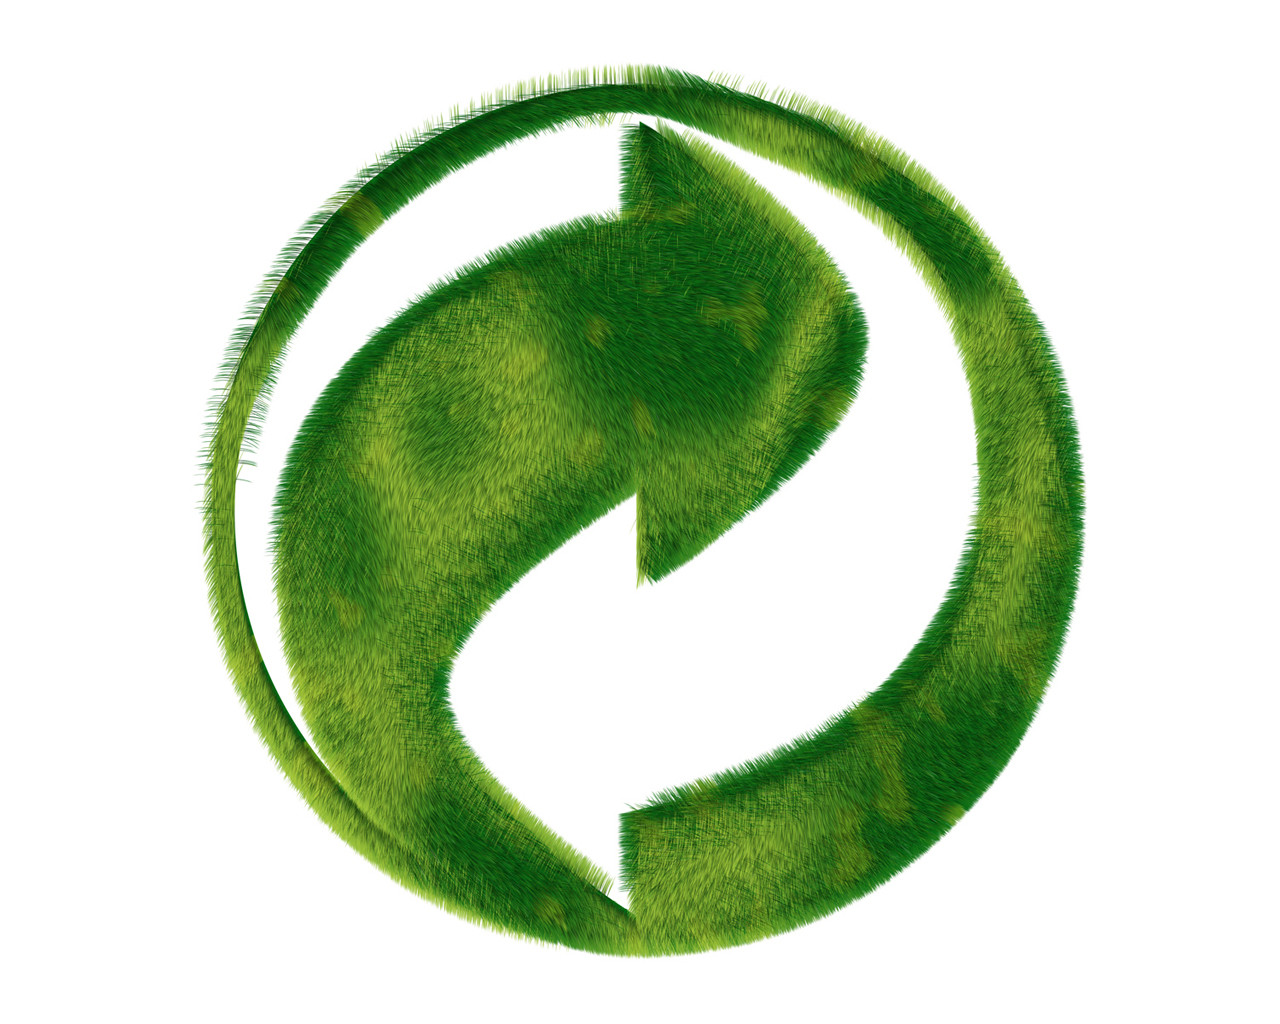 Greenpeace Symbols - Recycle symbols and Green icons ...